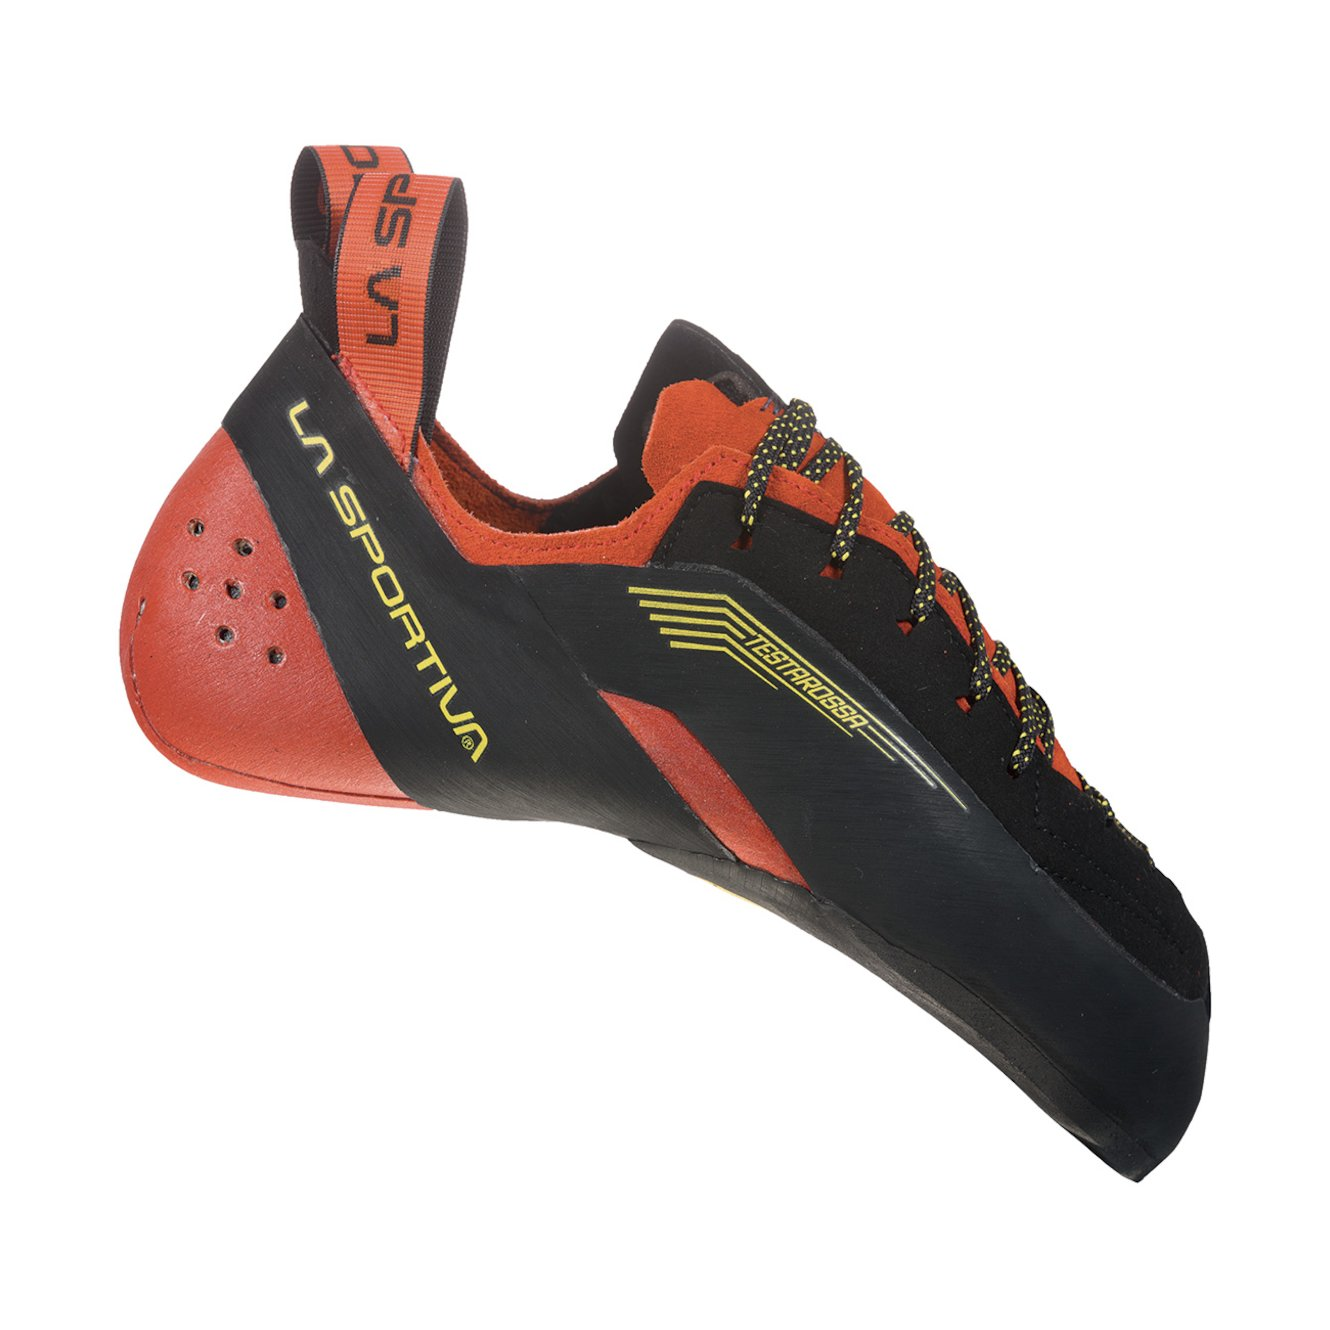 La Sportiva Testarossa 2019 / 2020: A Quick and complete Review